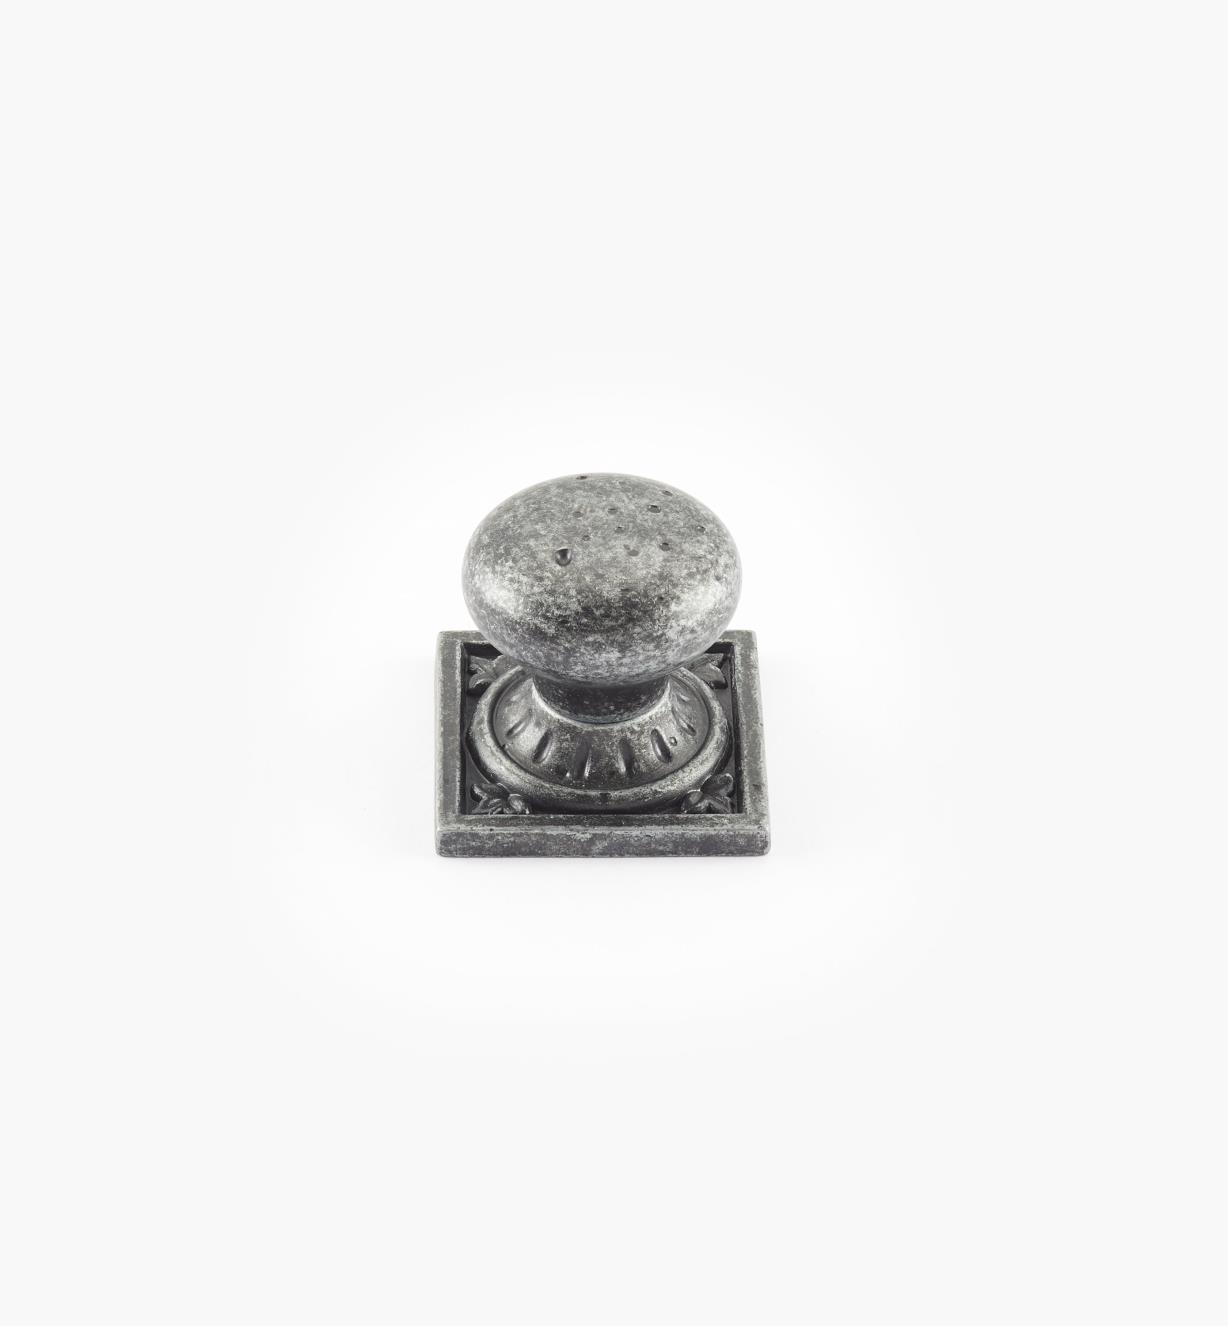 "02A2623 - Ambrosia 1 1/4"" x 1 1/4"" Wrought Iron Square Knob"